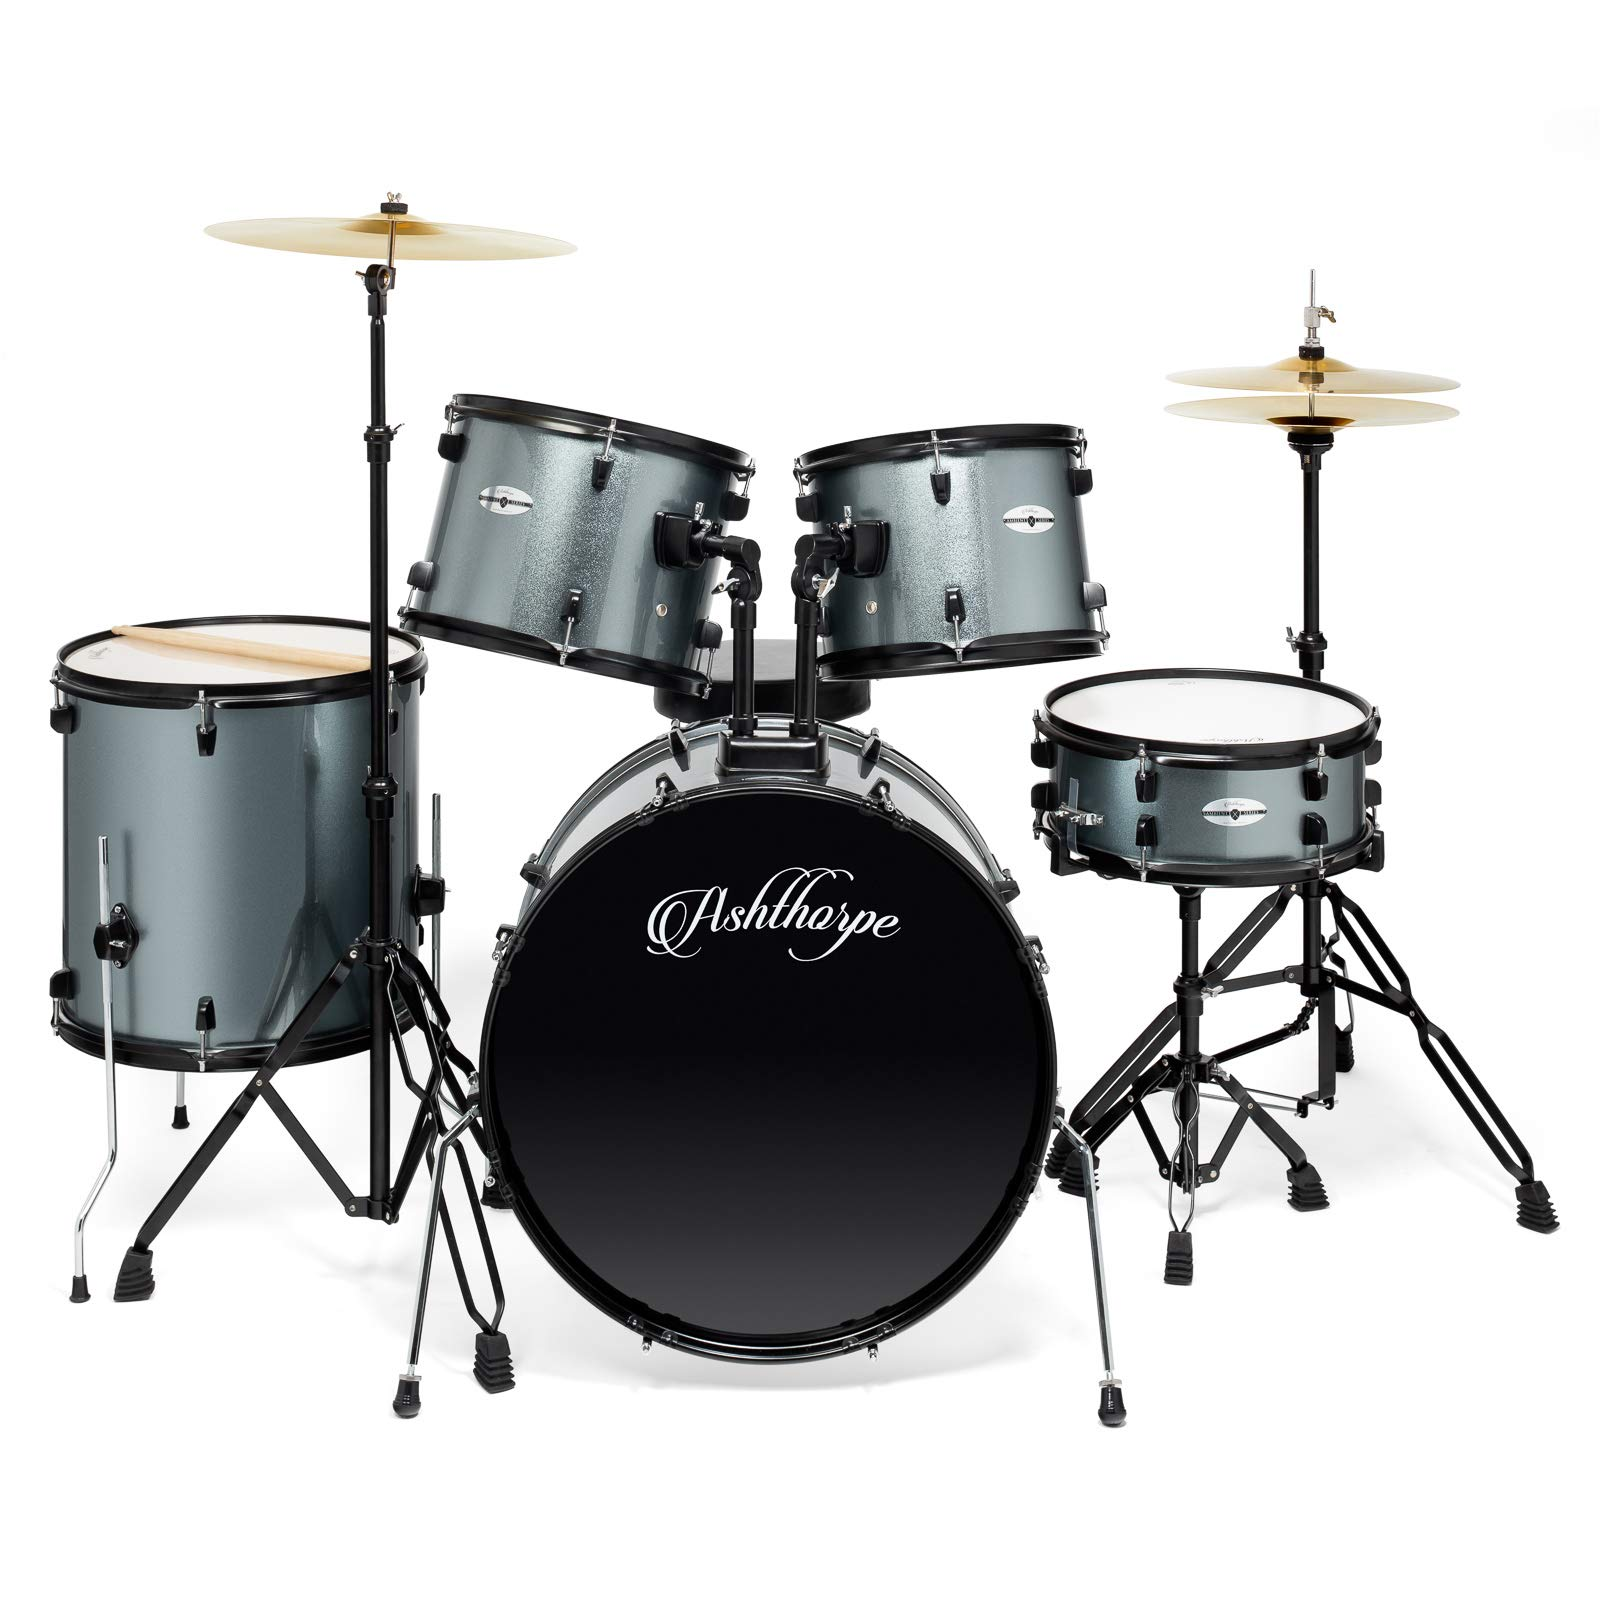 Ashthorpe 5-Piece Complete Full Size Adult Drum Set with Remo Batter Heads - Silver by Ashthorpe (Image #2)